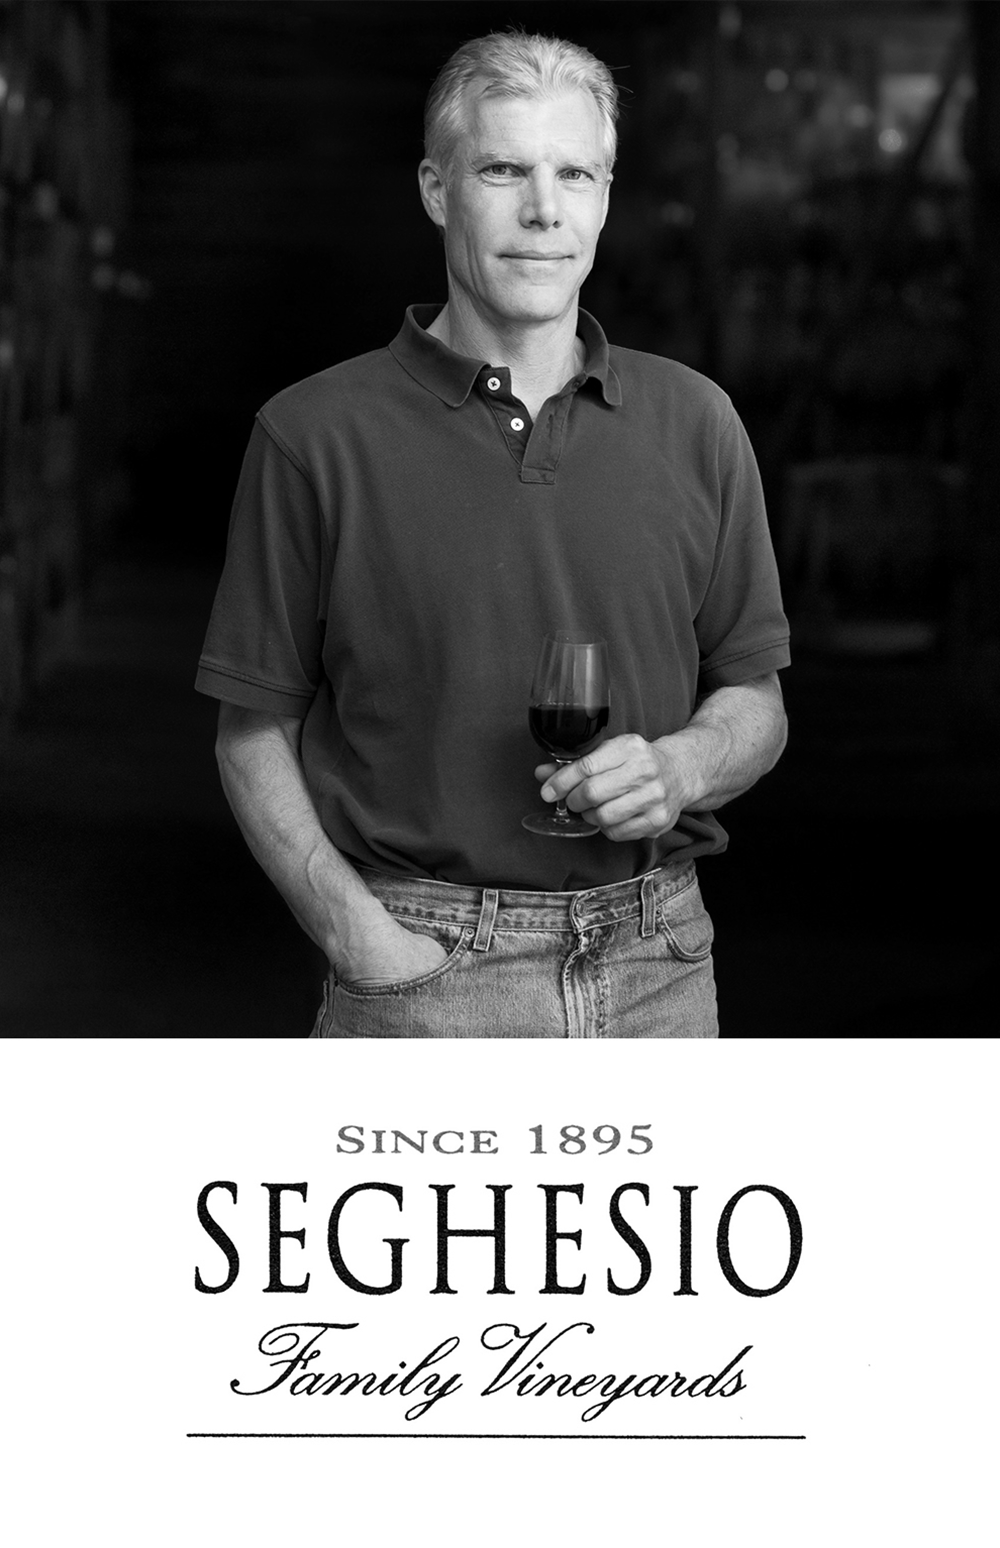 ted-Seghesio-Black&white.png